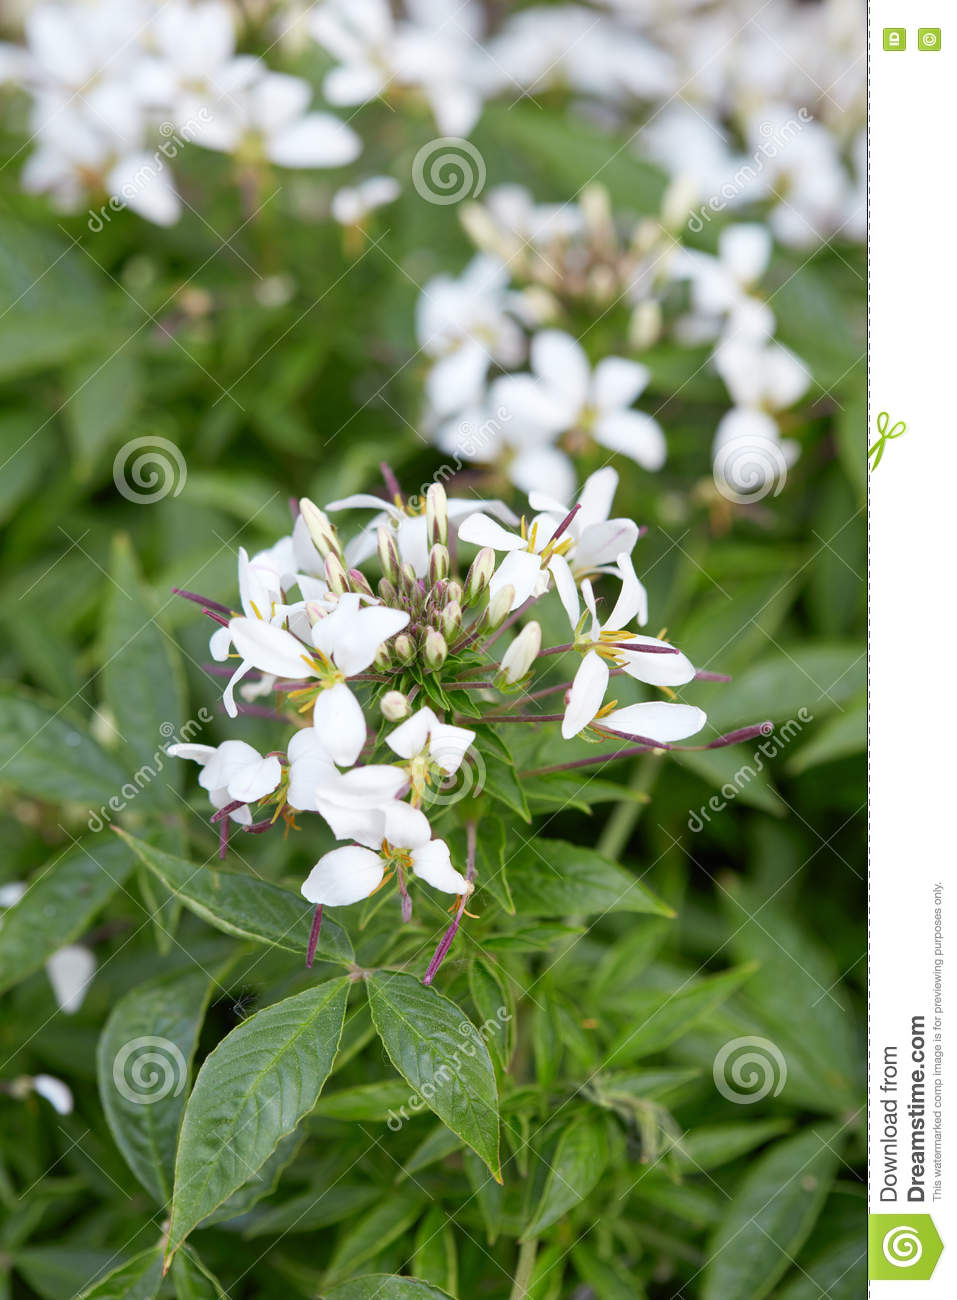 Cleome White Spider Flower And Leaves Stock Image Image Of